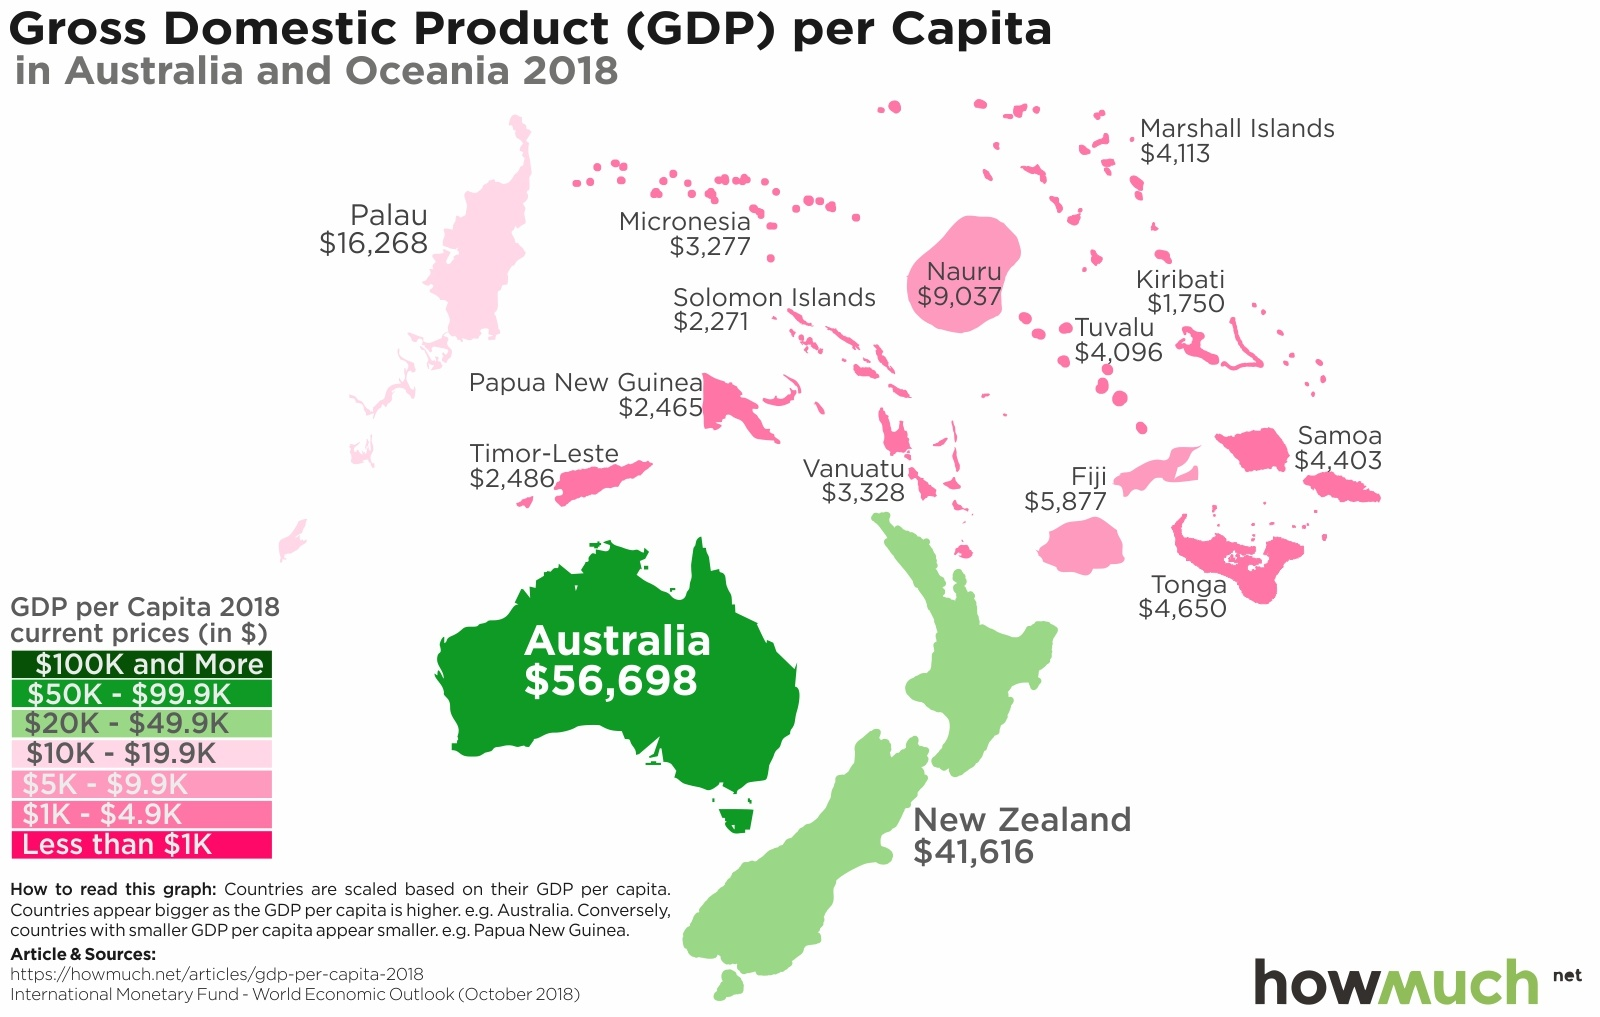 GDP per Capita in Oceania